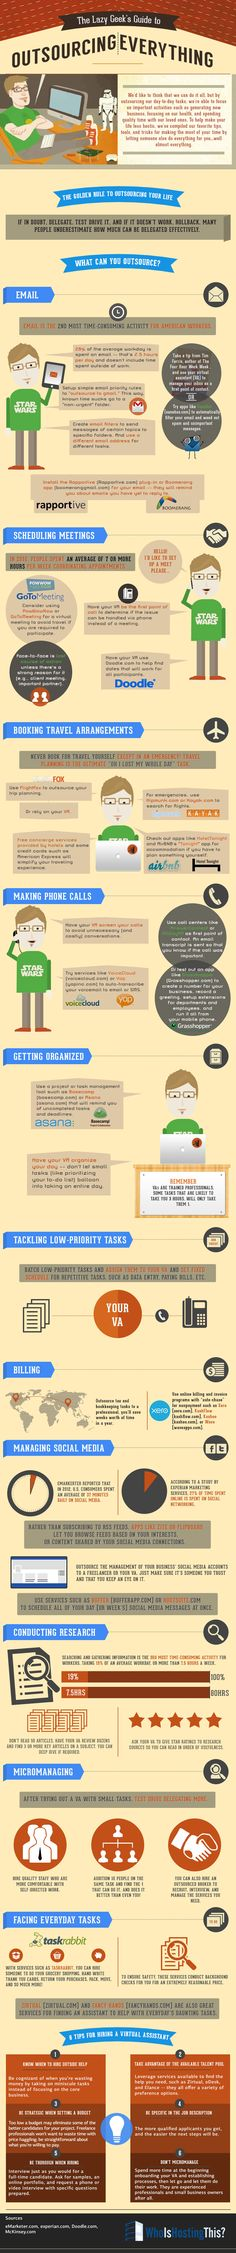 The-Lazy-Geeks-Guide-to-Outsourcing-Everything-Infographic